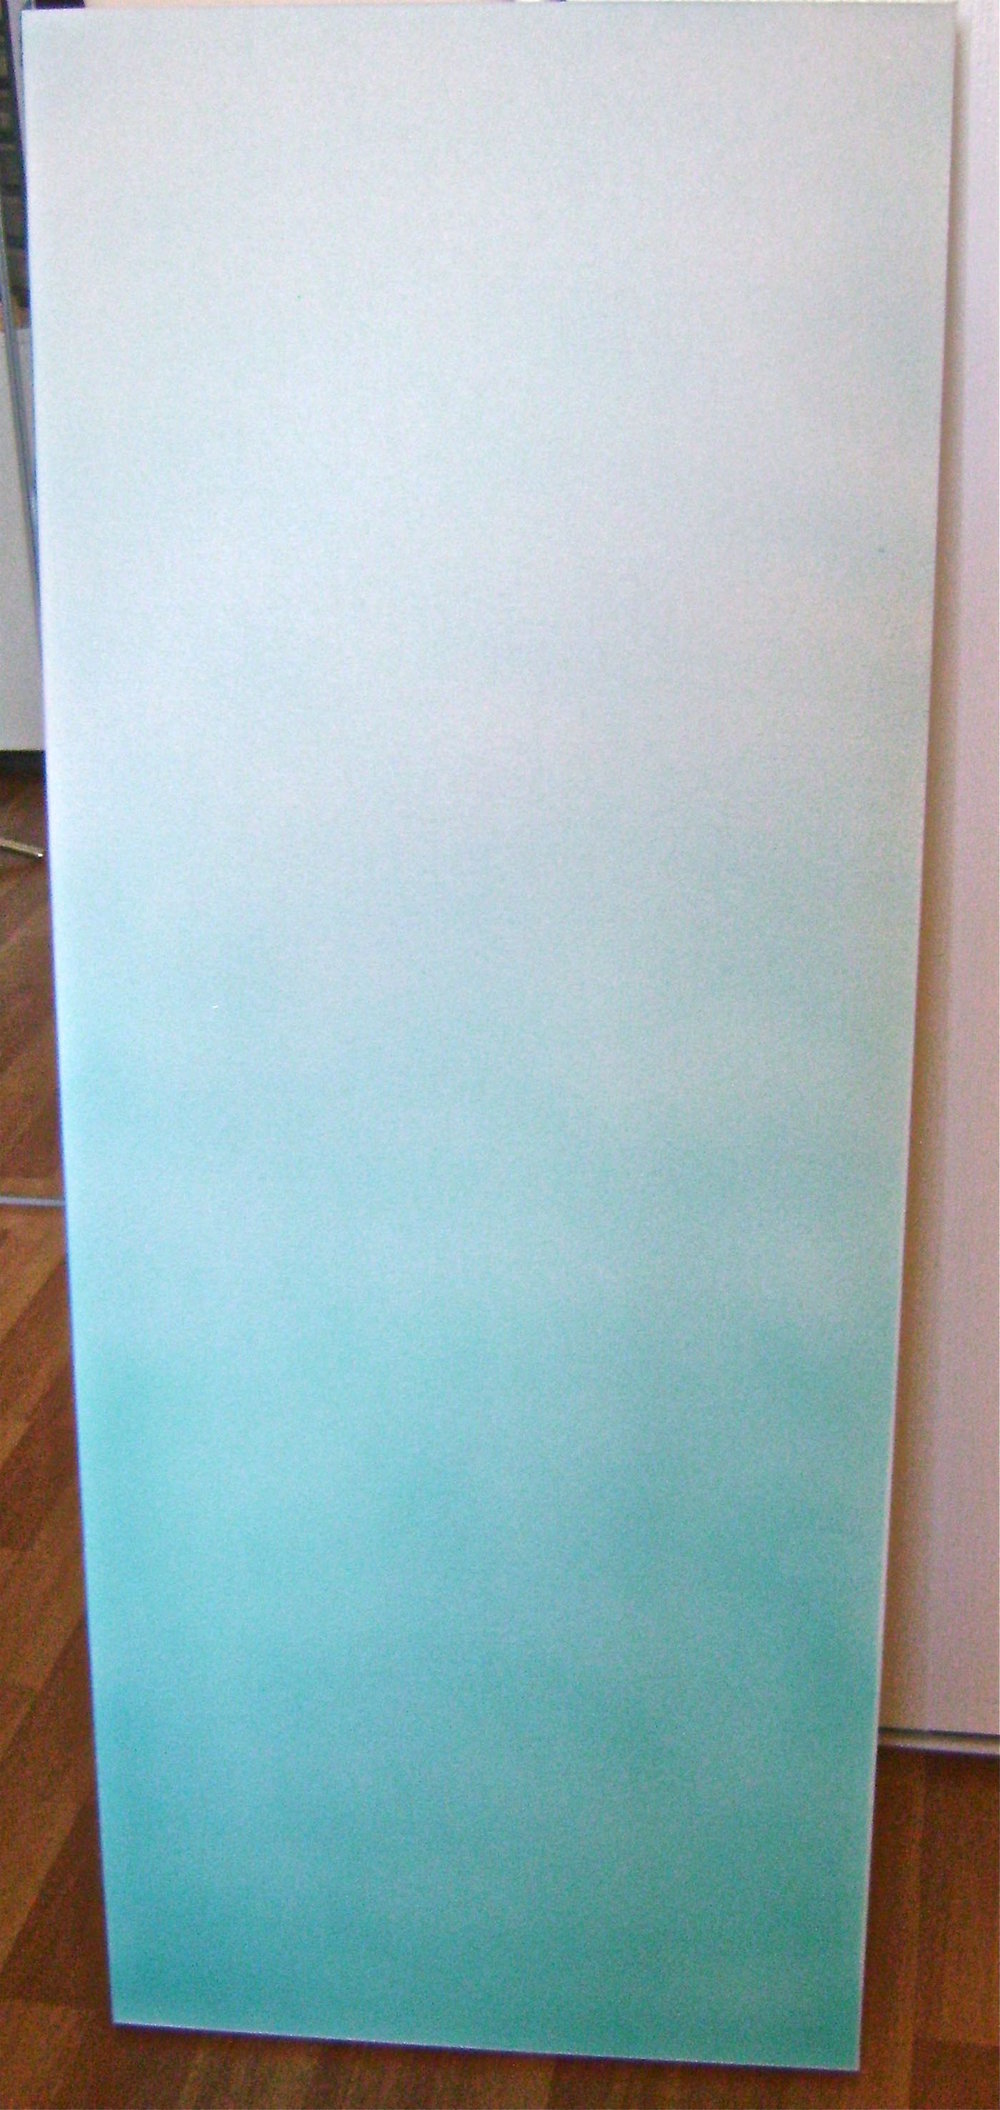 step 1 - Airbrush the canvas with turquoise paint.  Begin with full color at the bottom and a progressively lighter spray working toward the top.  Mix Mocha paint with white to create a light tan color.  Spray full color at the top of the canvas then spray a lighter coat as you move down the canvas to blend into the turquoise.  Protect the painted center when dry with Frog tape and airbrush all four sides with solid turquoise.